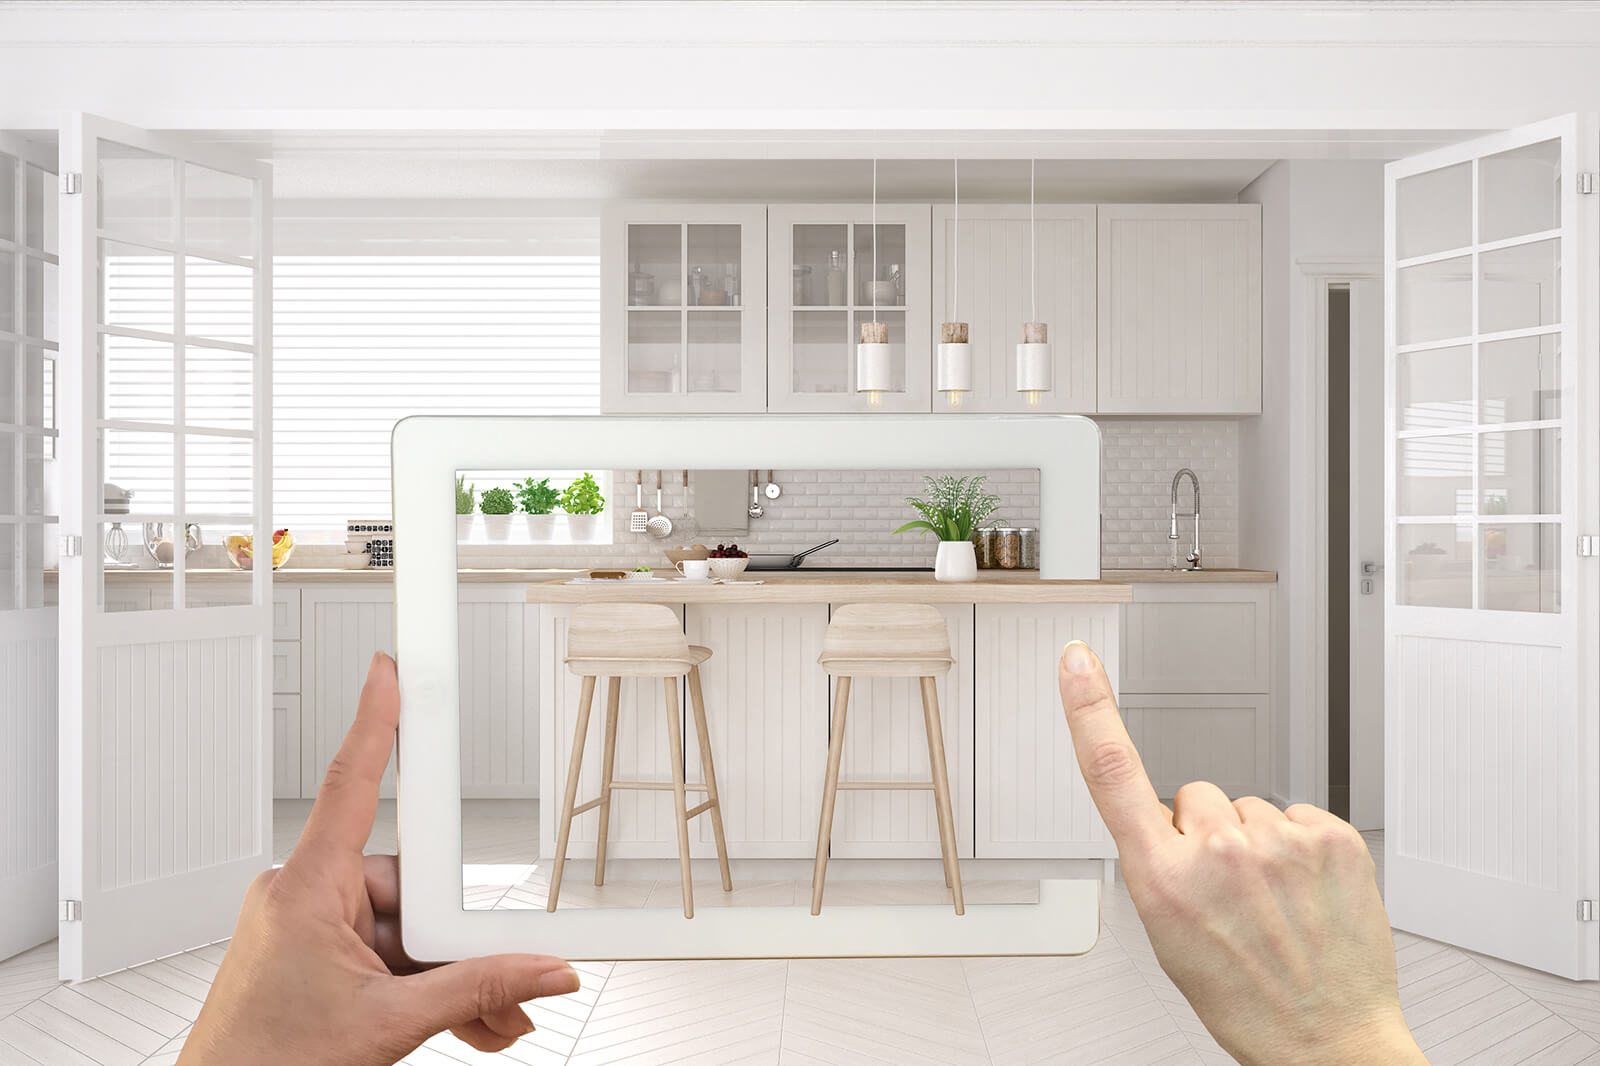 Interactive Kitchen Design Tools and Programs   LoveToKnow